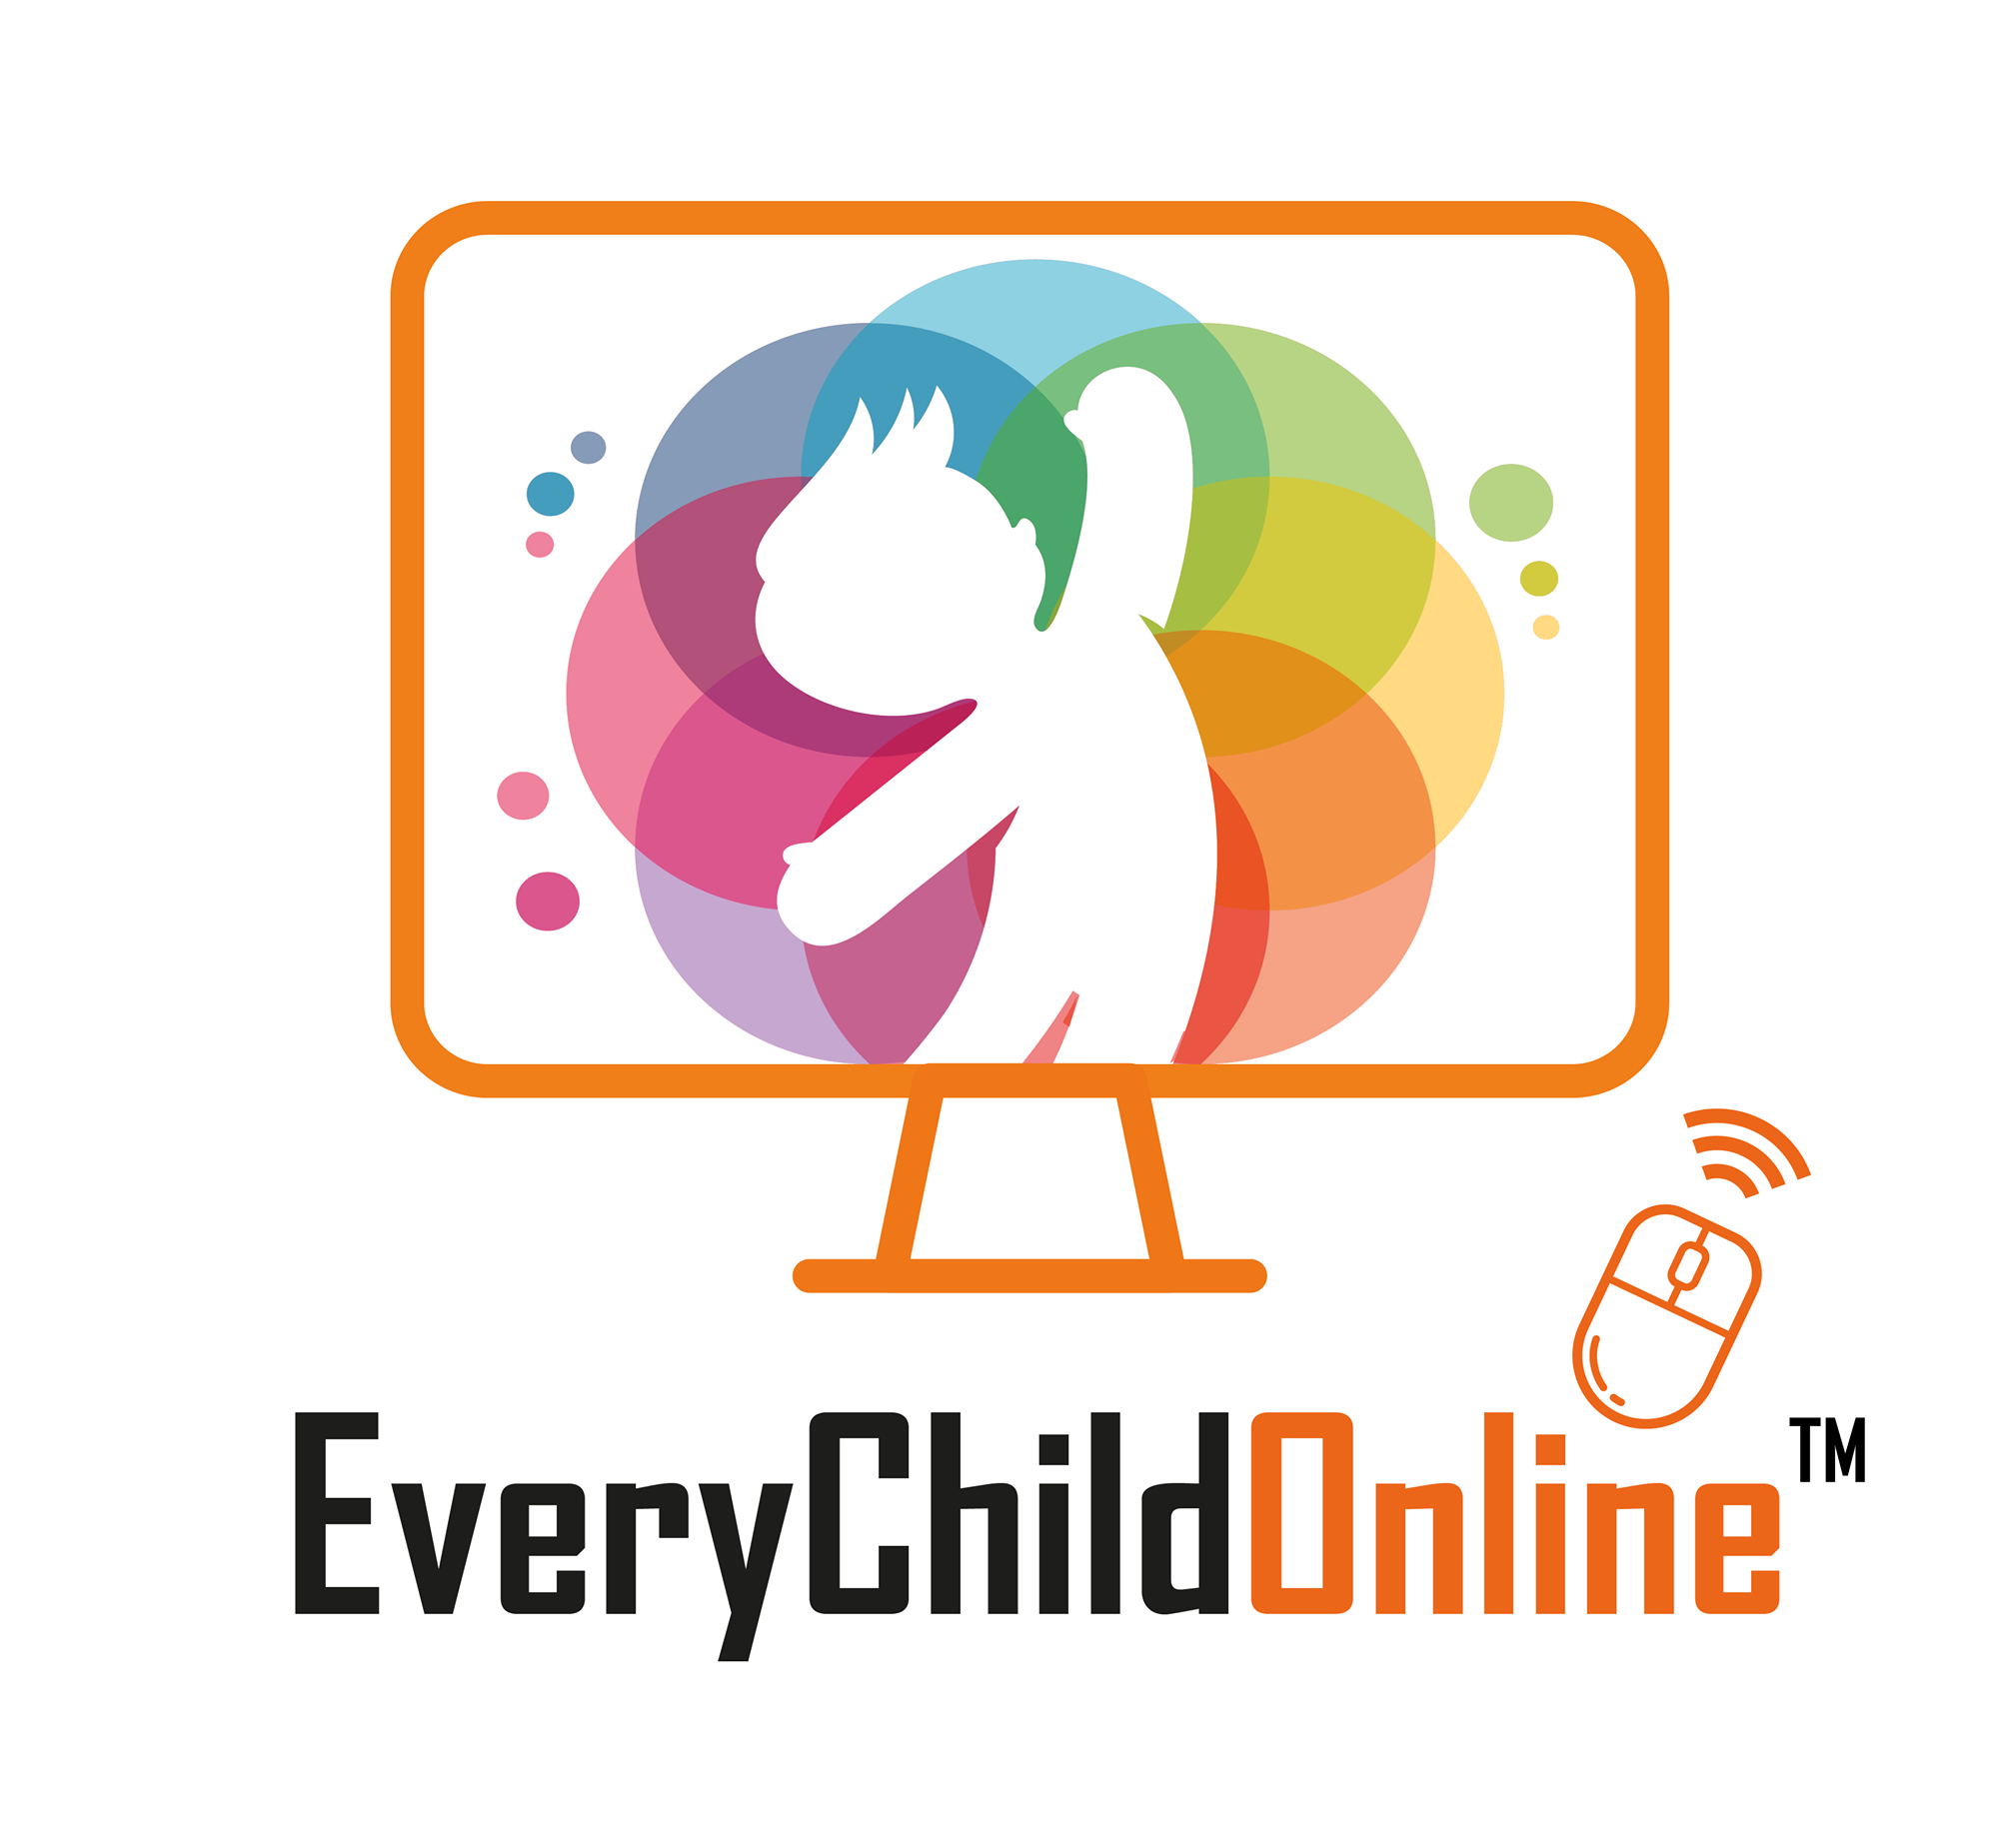 Every Child Online logo